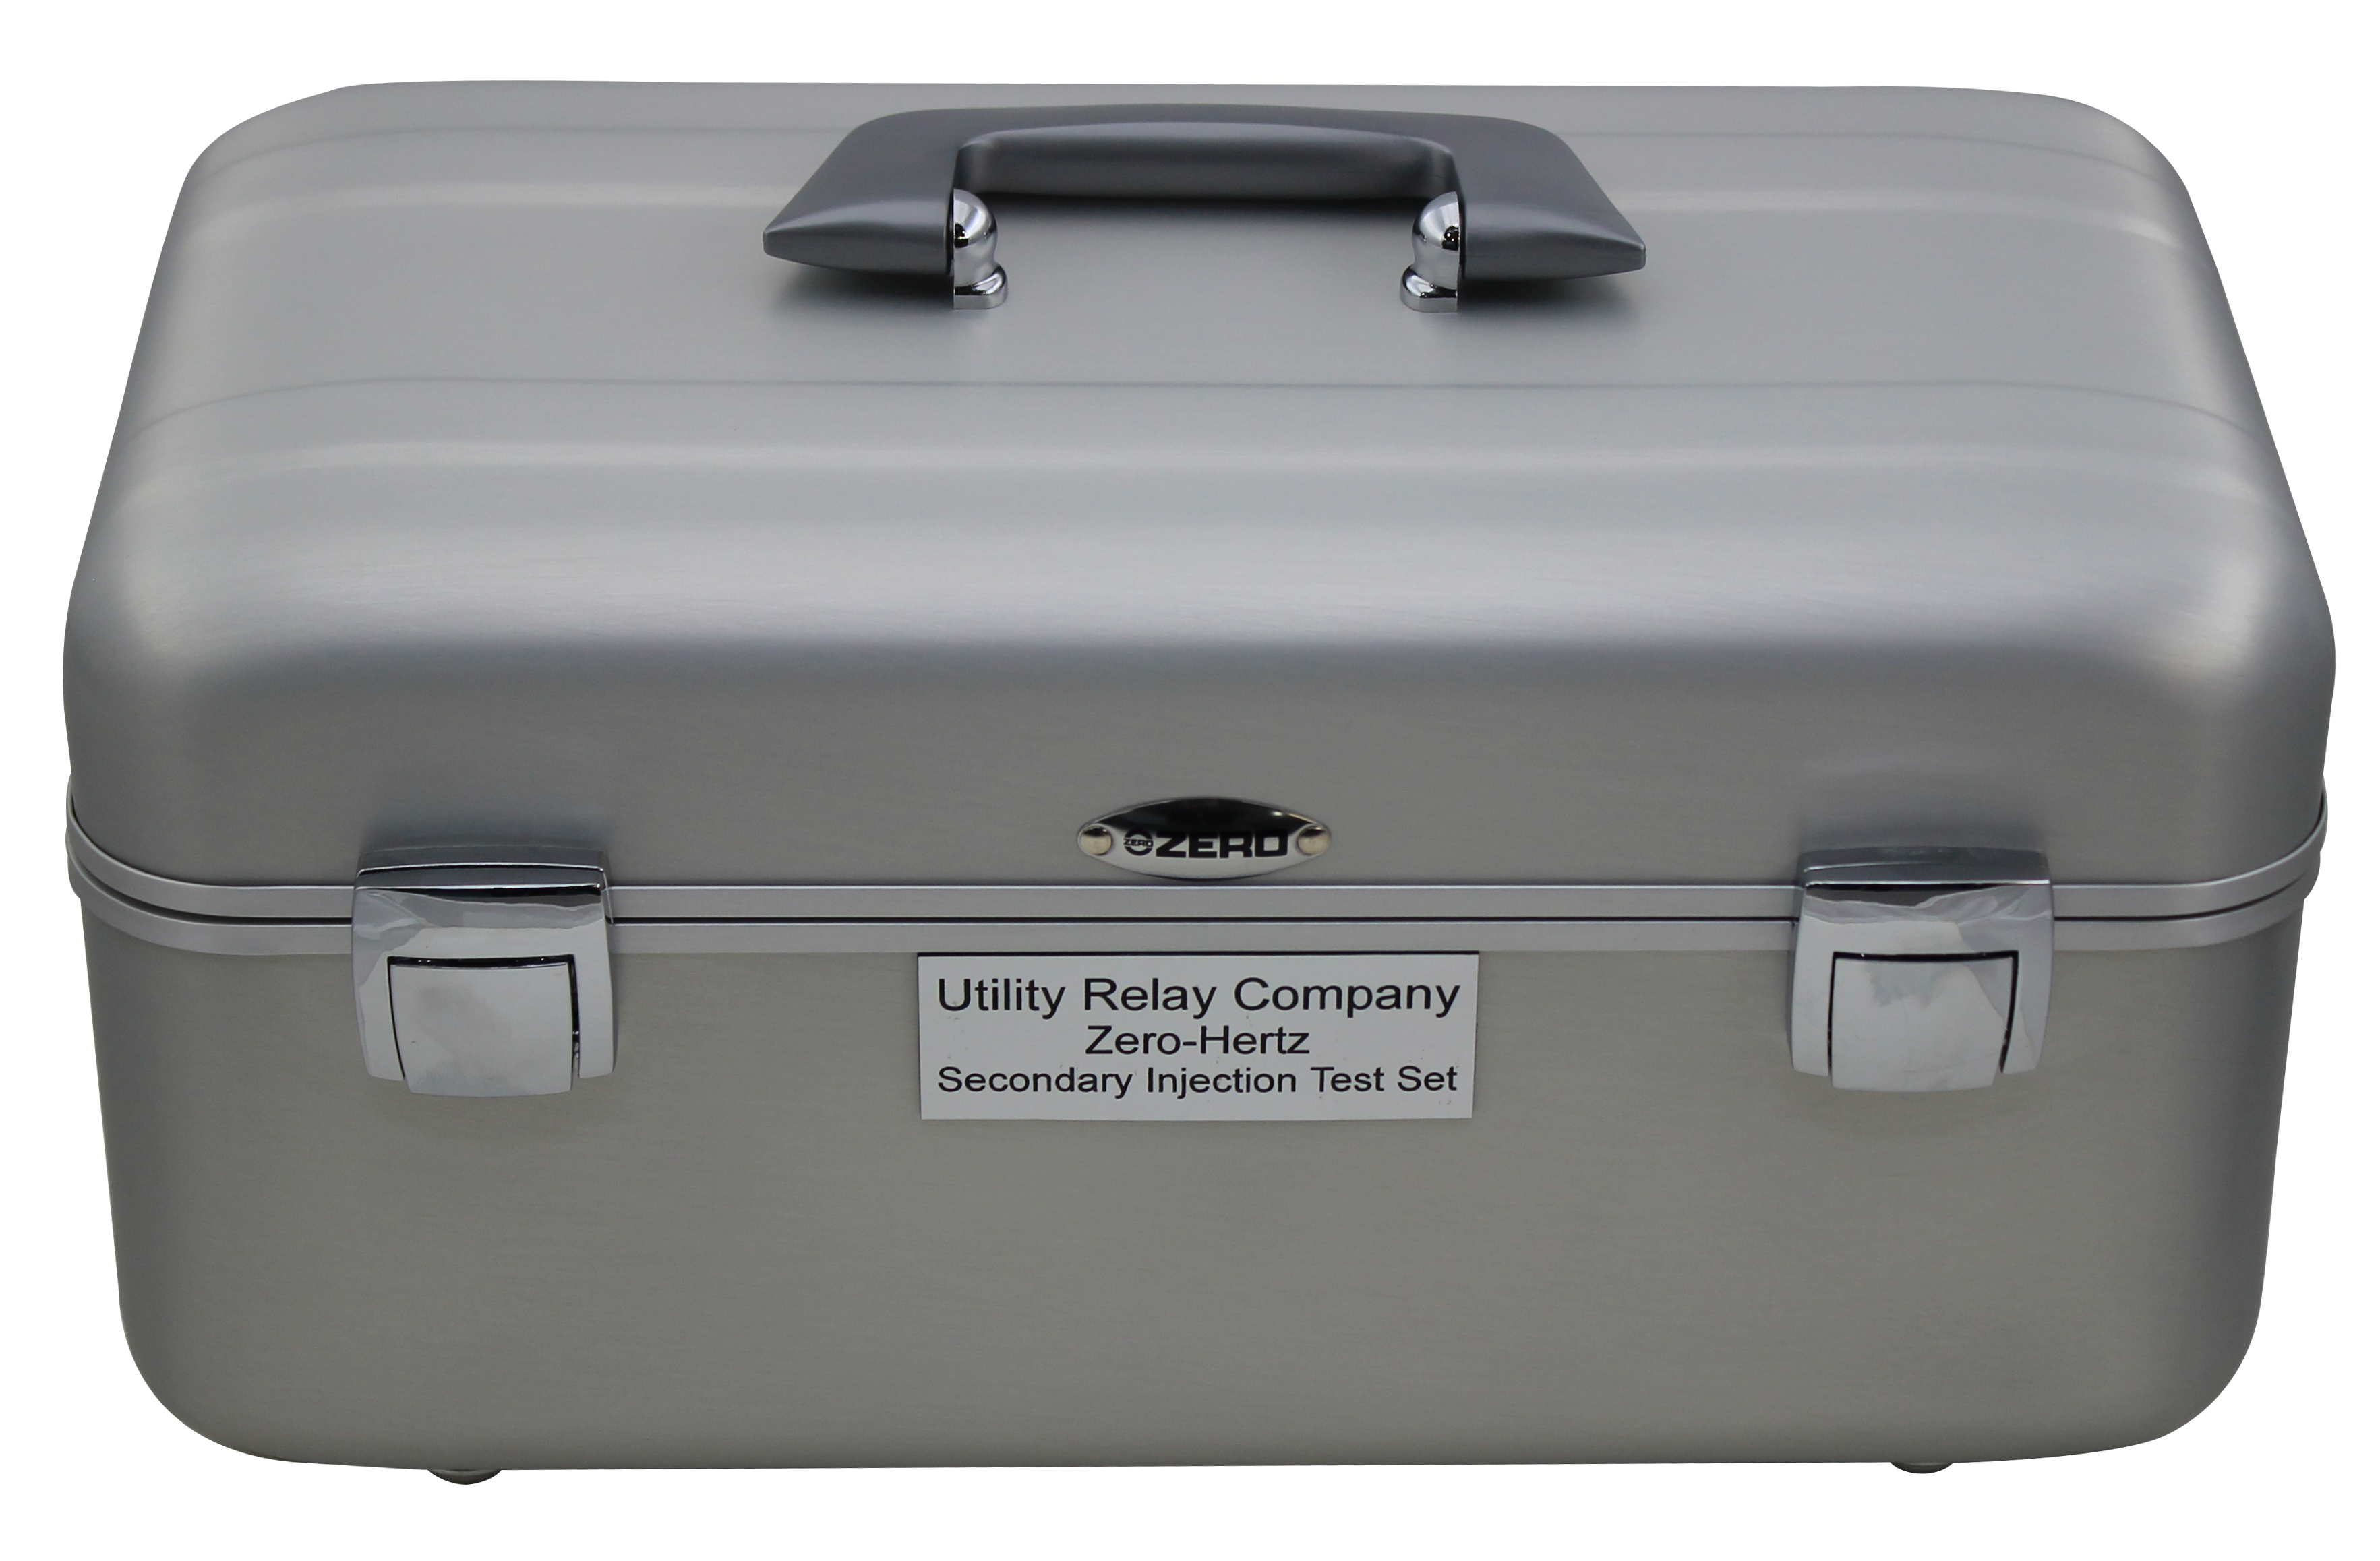 Test Sets at Utility Relay Company